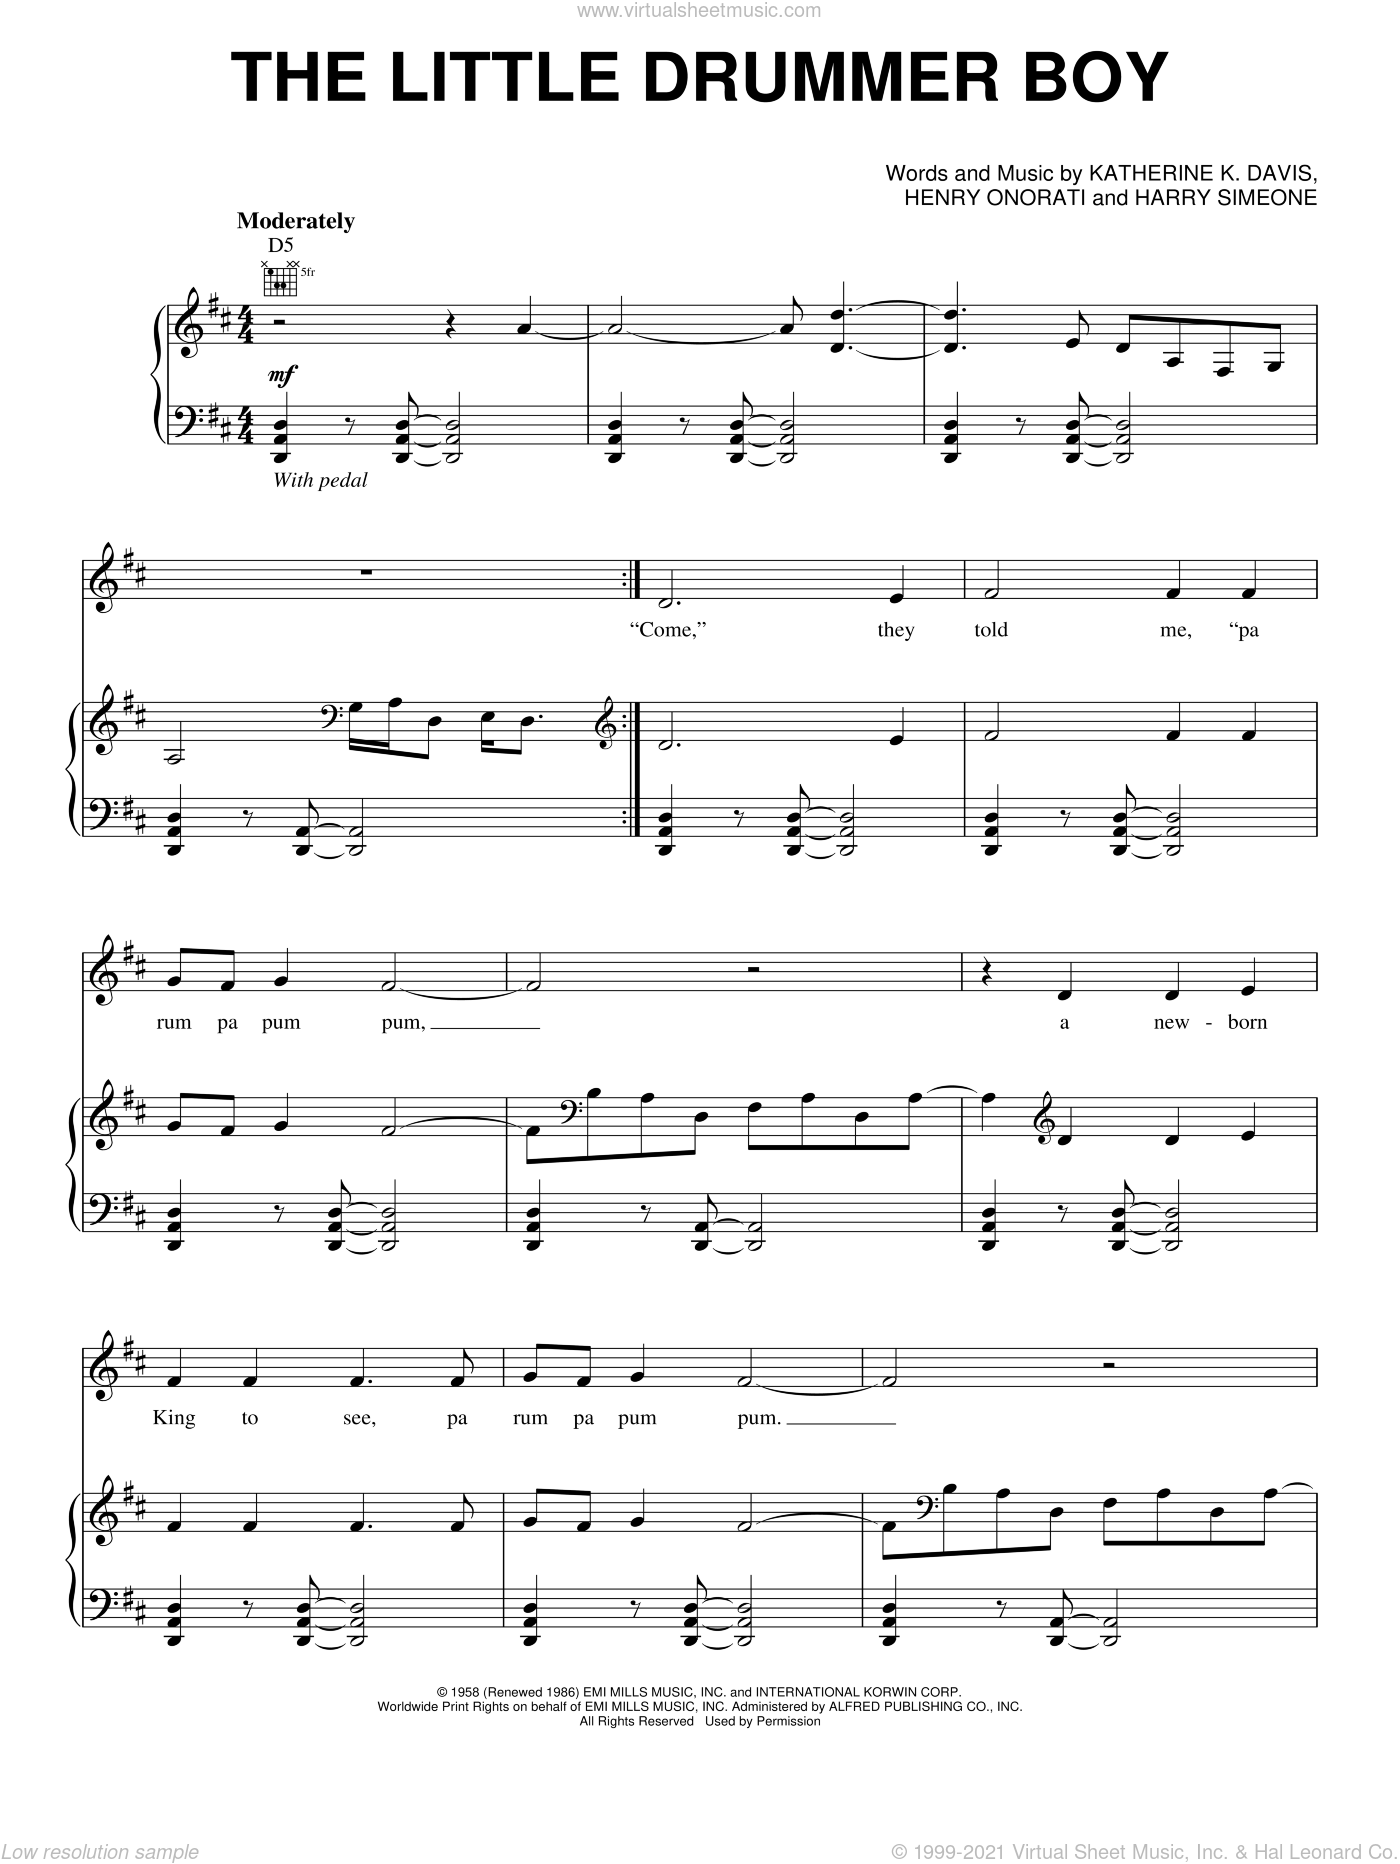 The Little Drummer Boy sheet music for voice, piano or guitar by Josh Groban, Josh Groban featuring Andy McKee, Harry Simeone, Henry Onorati and Katherine Davis, intermediate skill level